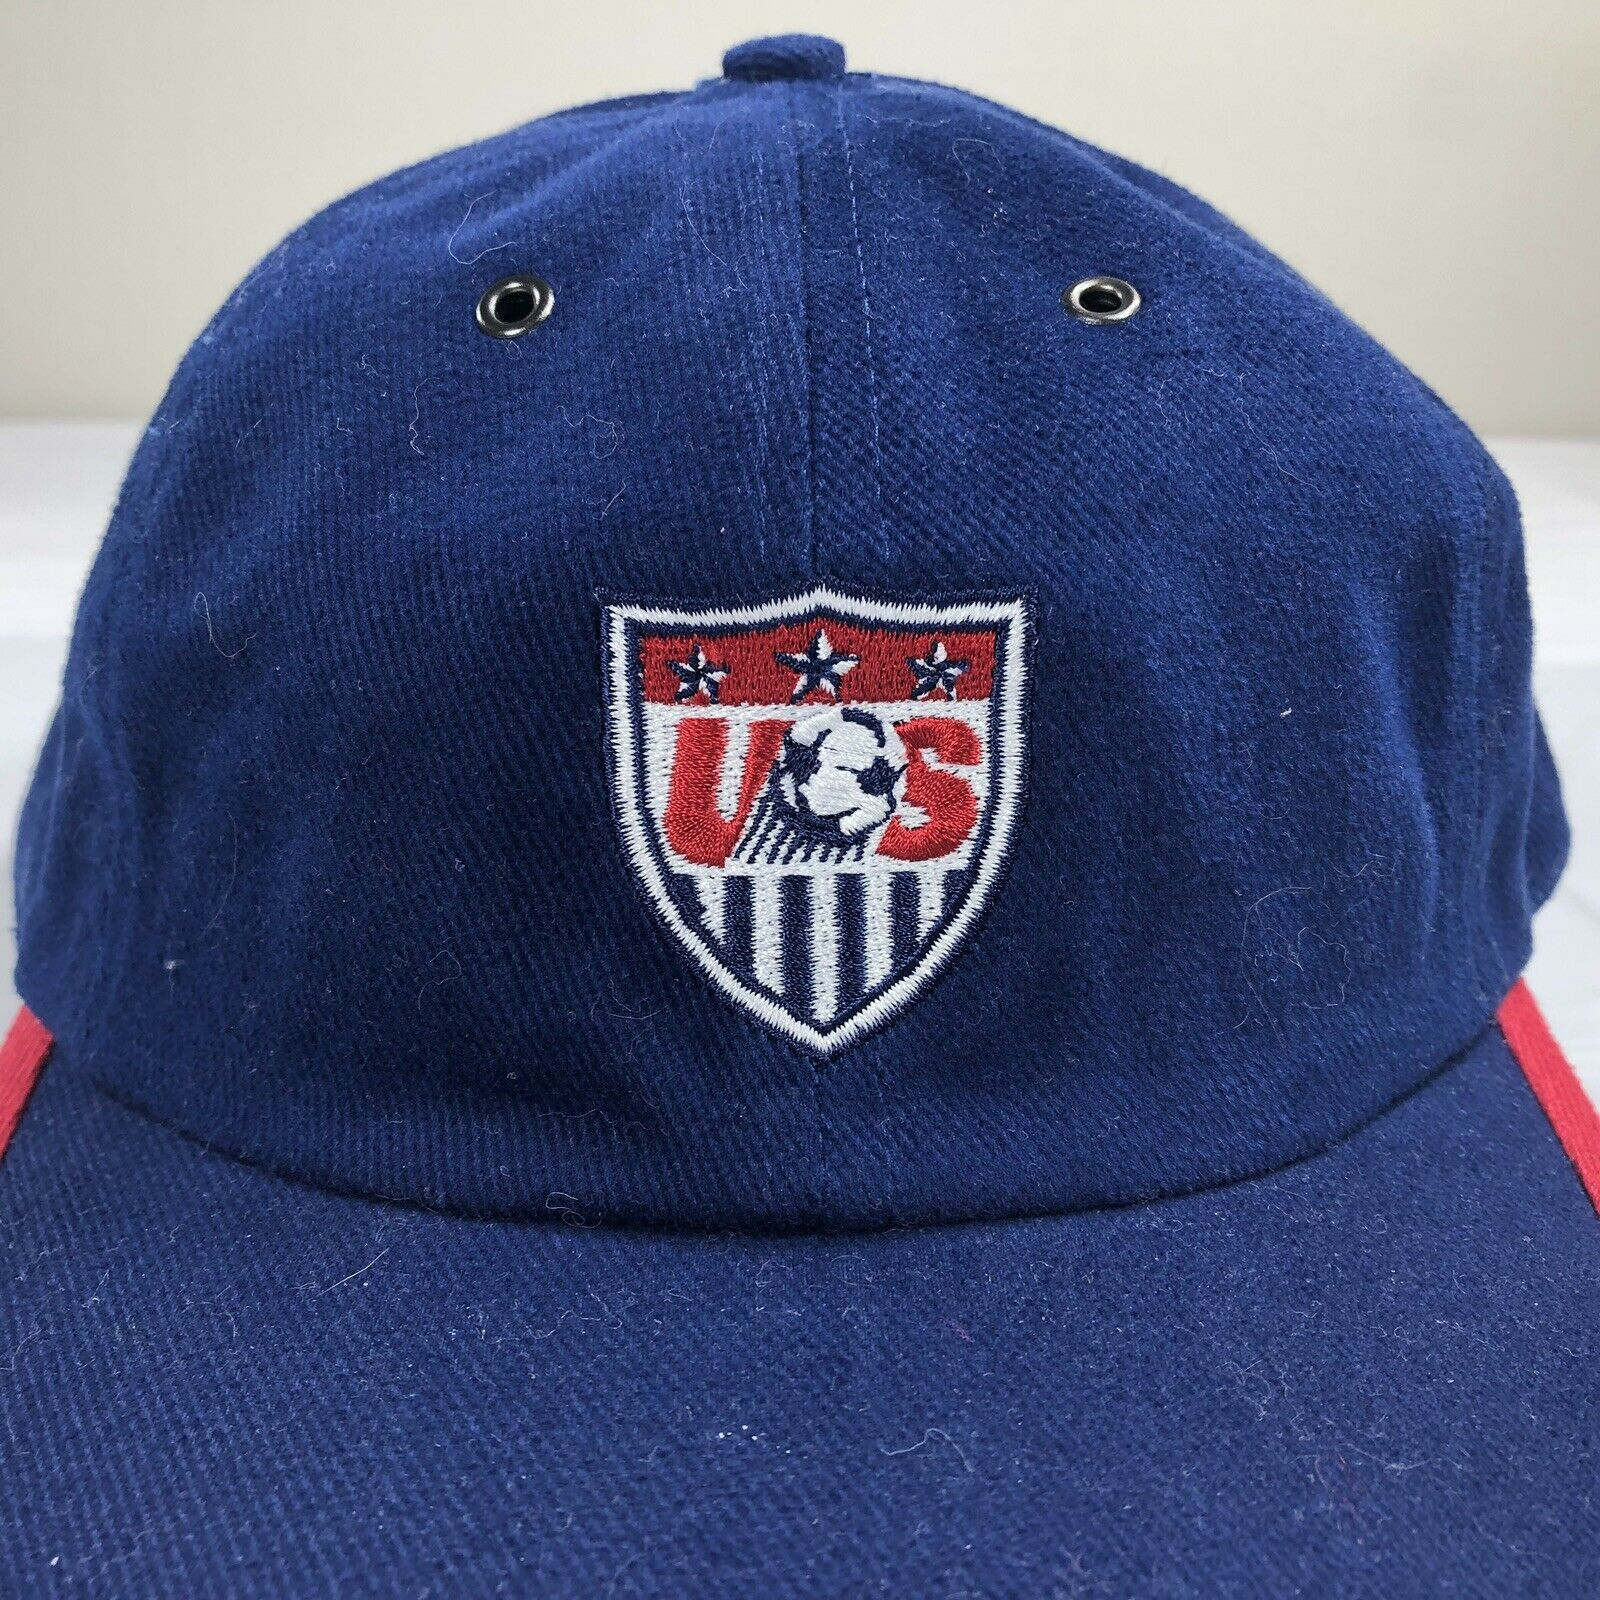 VTG Nike Hat Team USA Strapback Cap Soccer Olympics Swoosh Air Flight OG